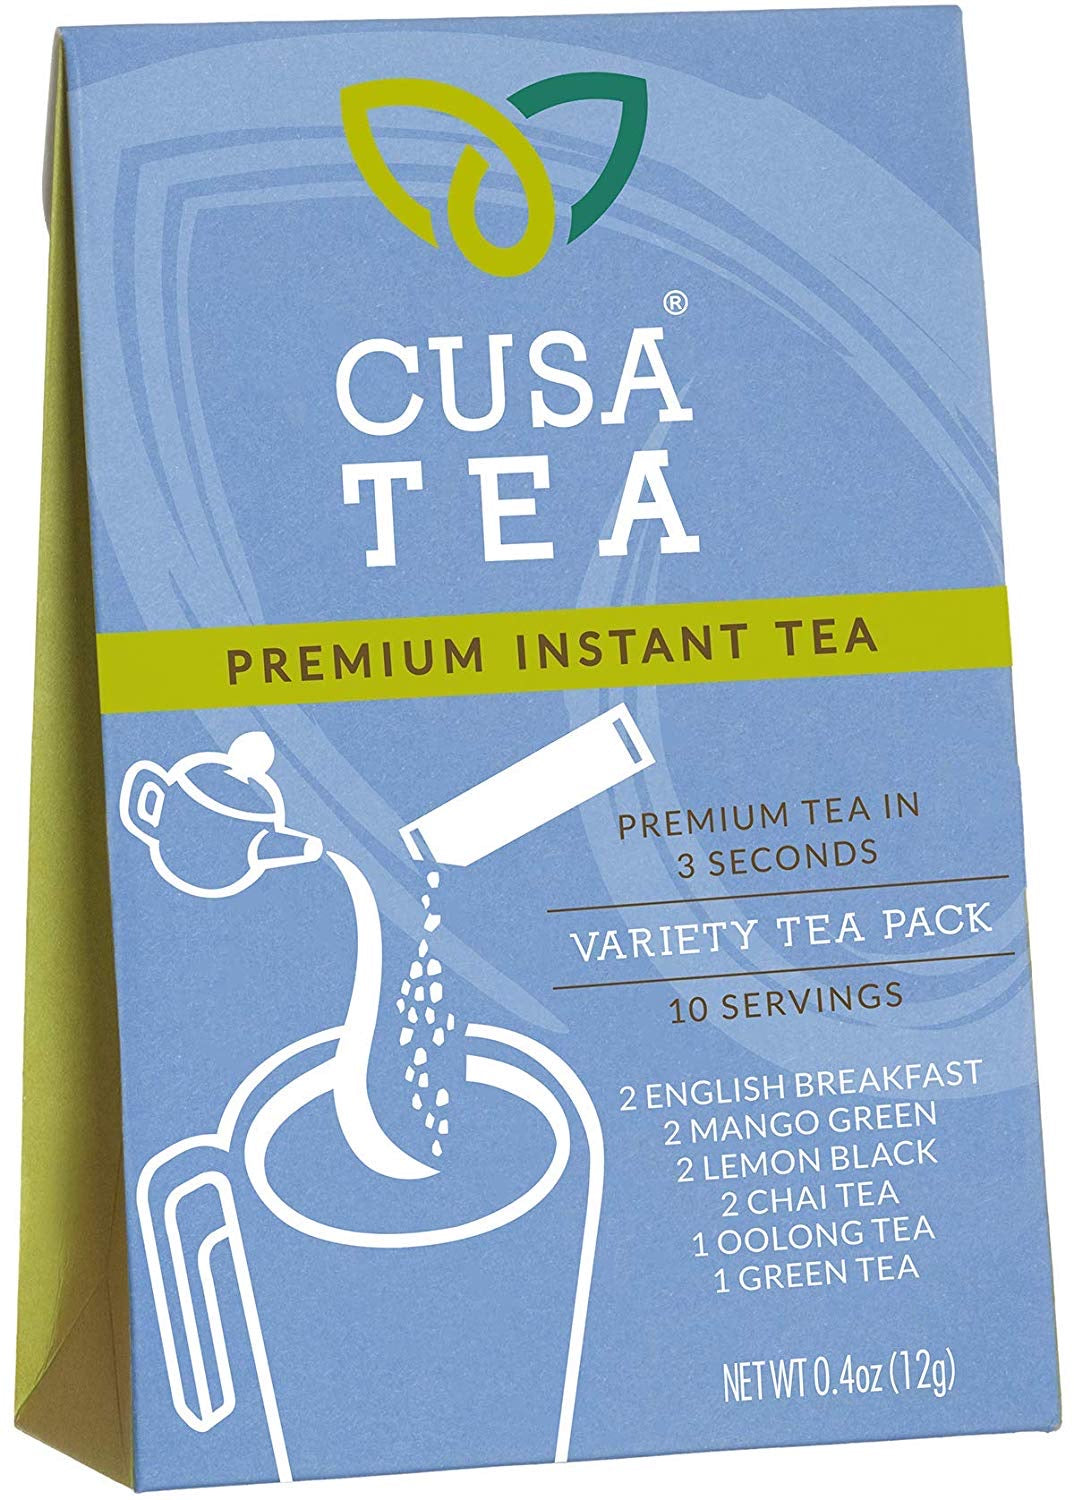 Cusa - Instant Tea (Variety Pack)